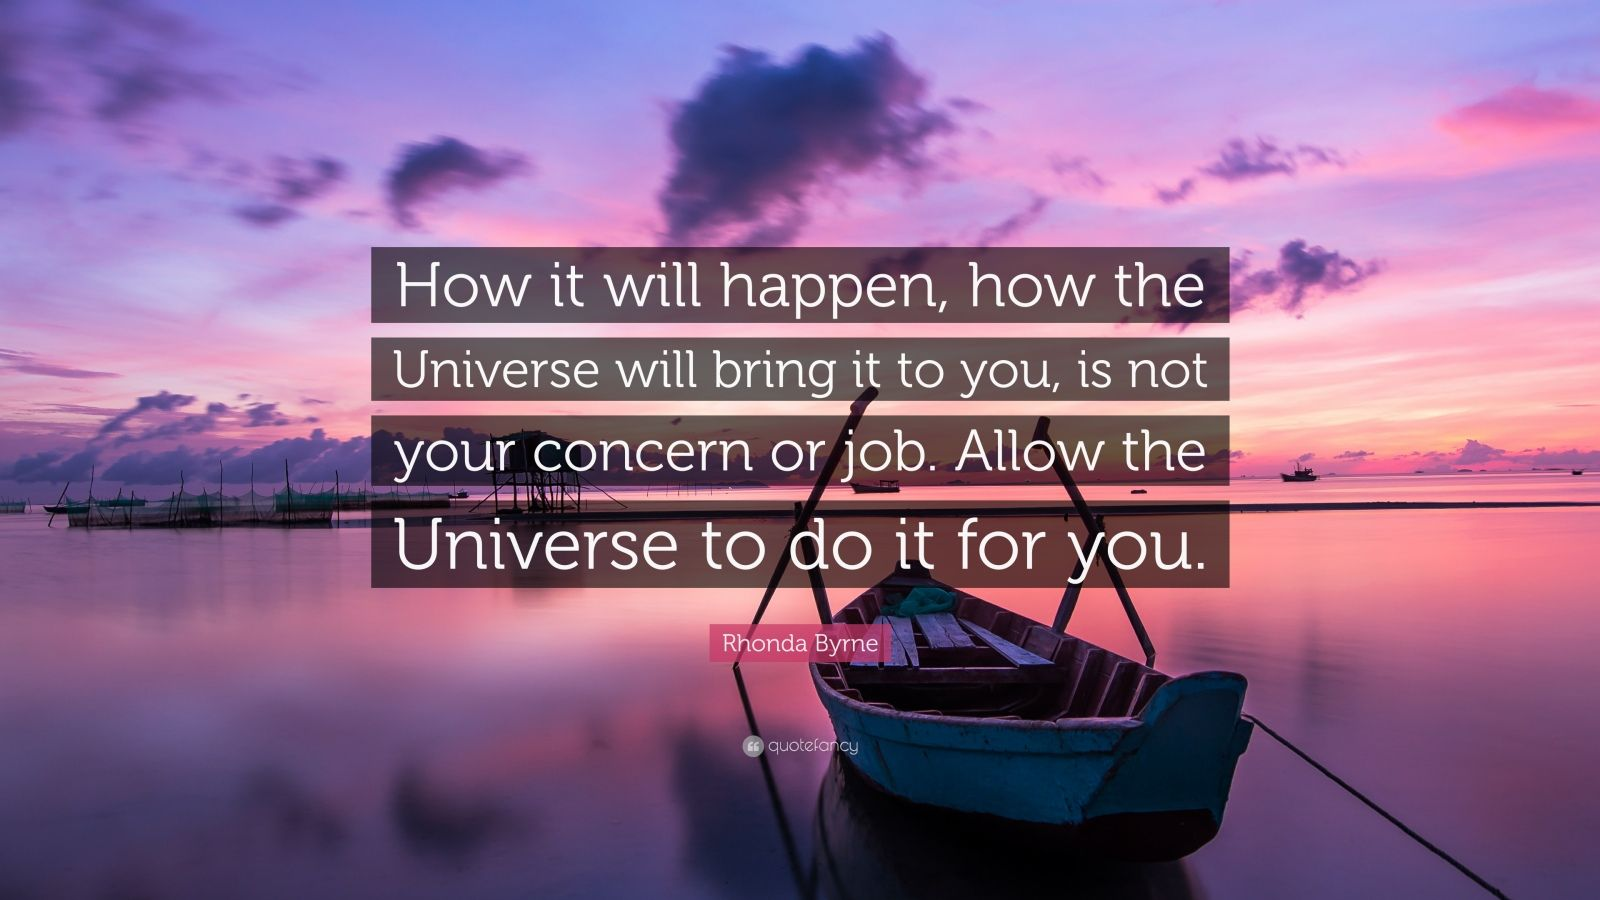 """Rhonda Byrne Quote: """"How it will happen, how the Universe will bring it to you, is not your concern or job. Allow the Universe to do it for you."""""""